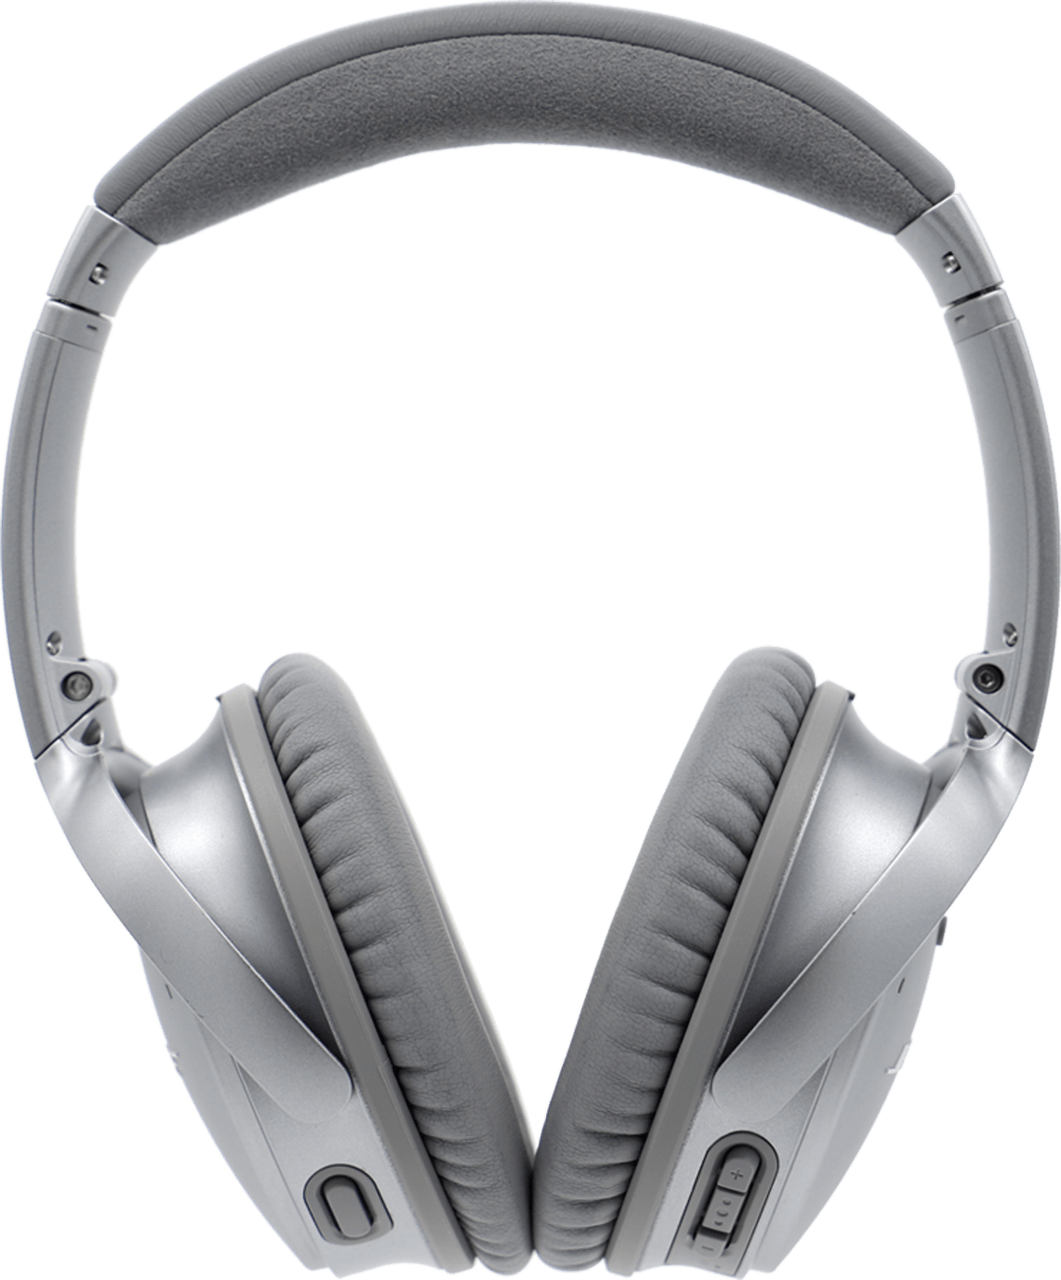 Silver Bose Quietcomfort 35 II Noise-cancelling Over-ear Bluetooth Headphones.2